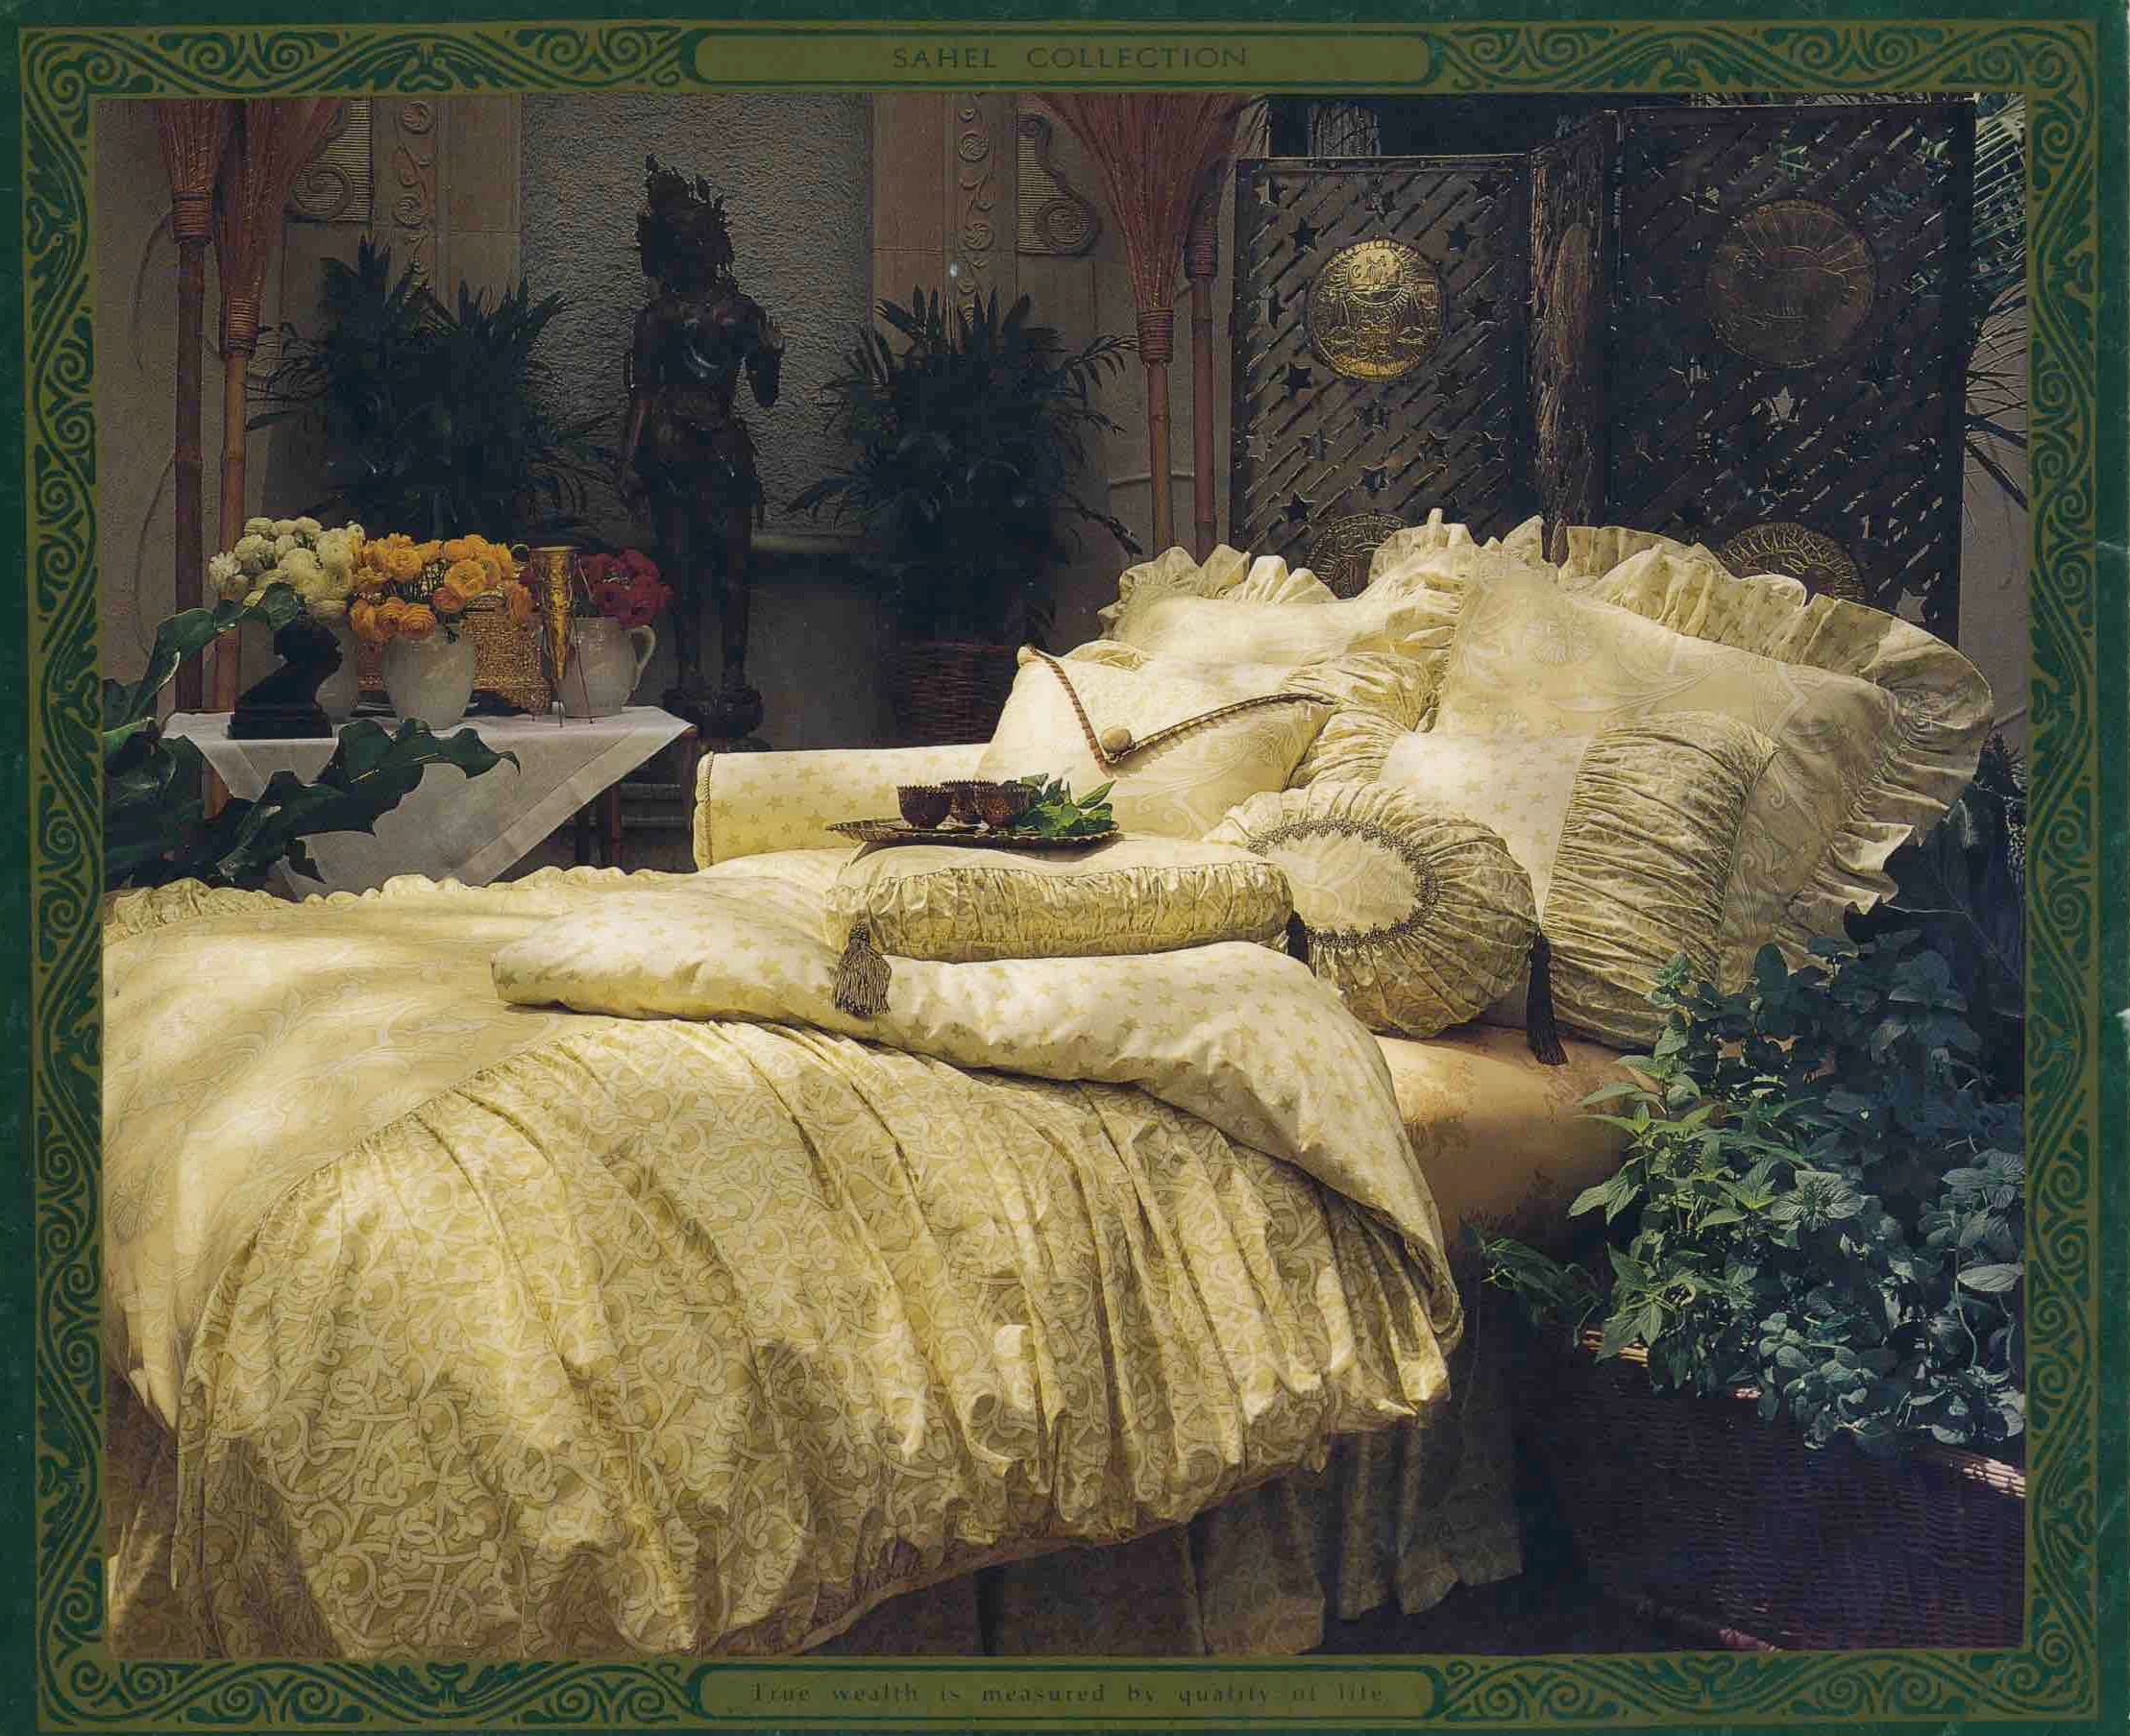 Sahel bedding